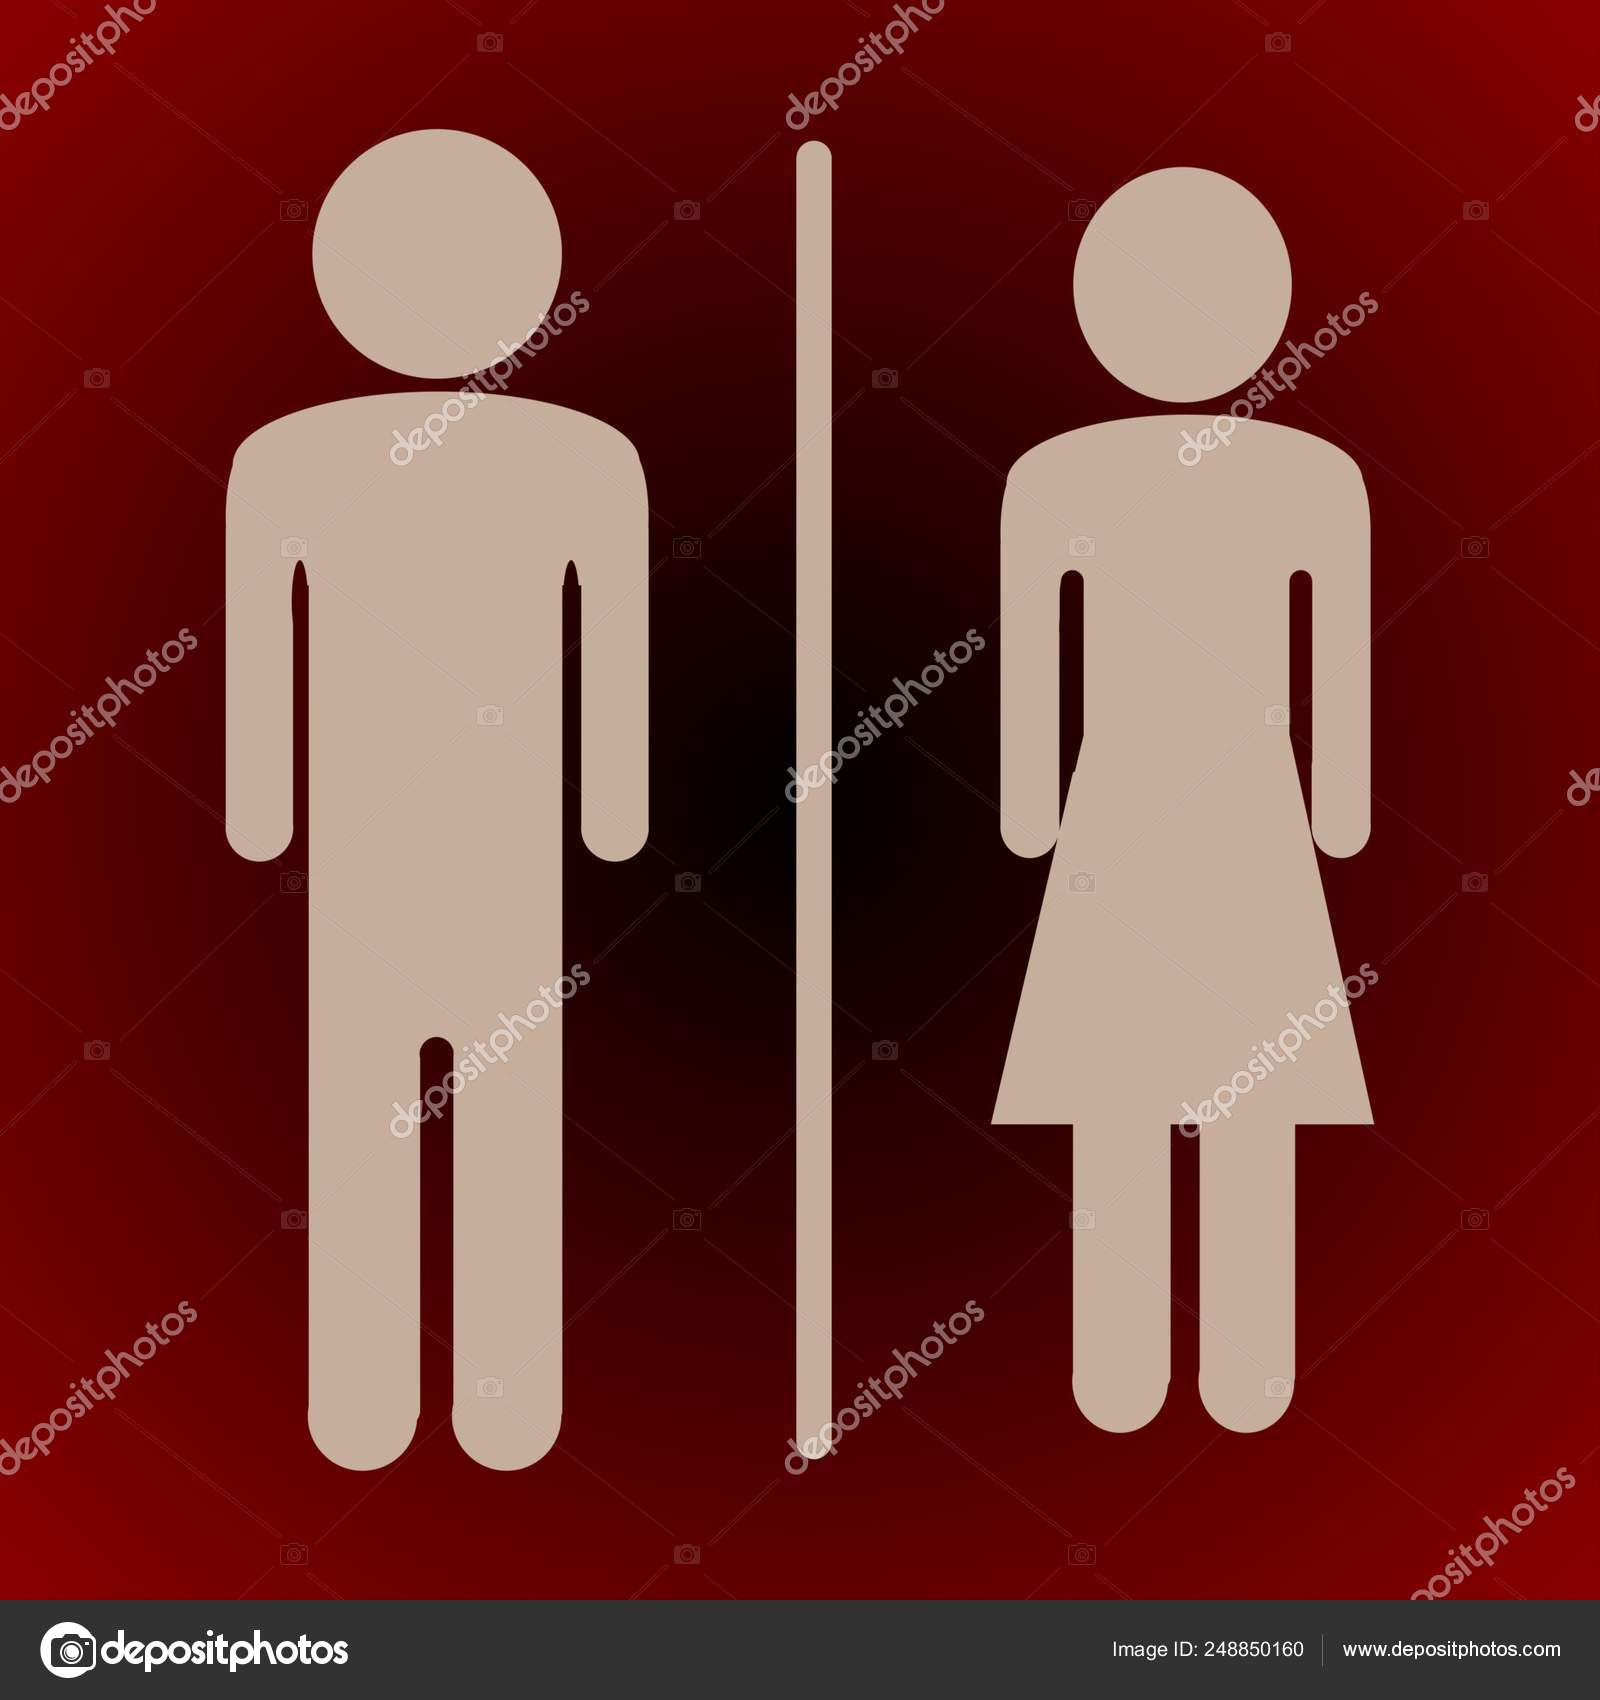 Sign For Bathroom Wc Icon Toilet And Restroom Icon Male Female Symbol Bathroom